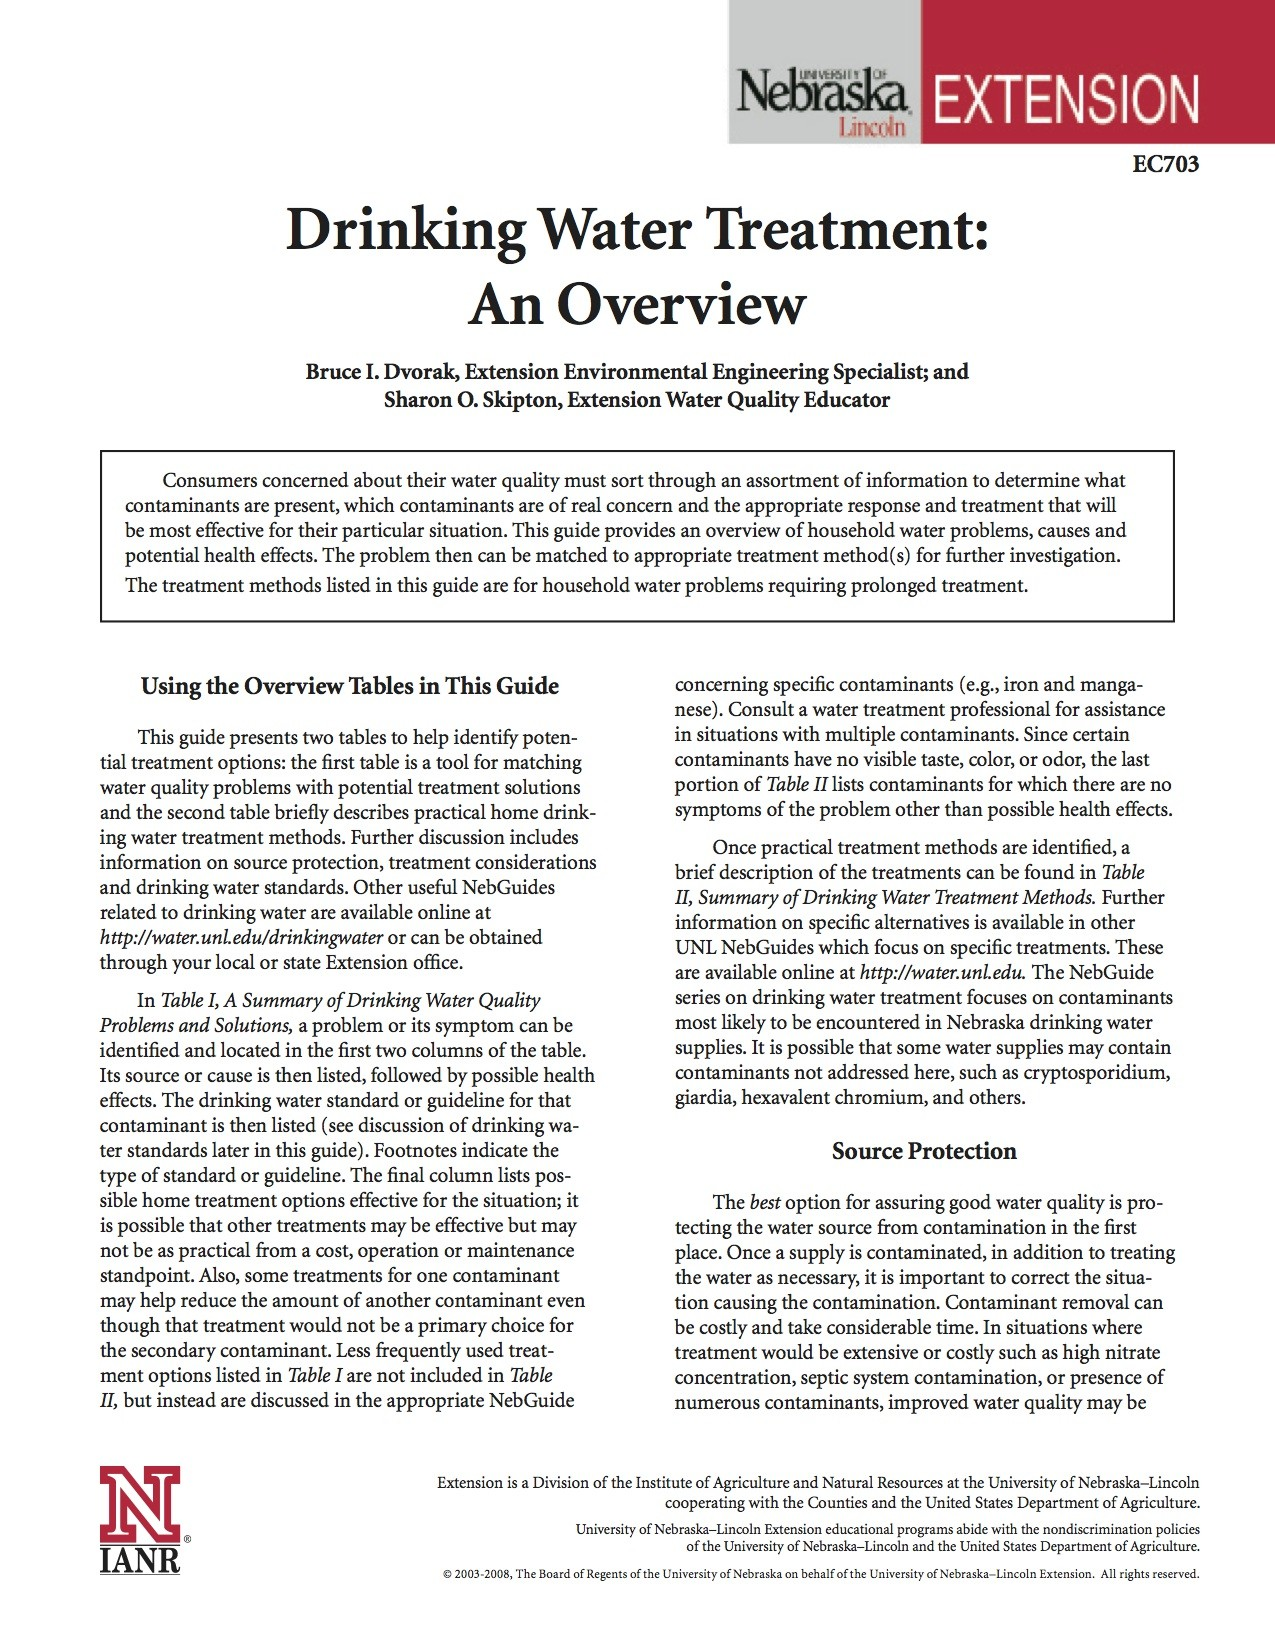 Drinking Water Treatment: An Overview